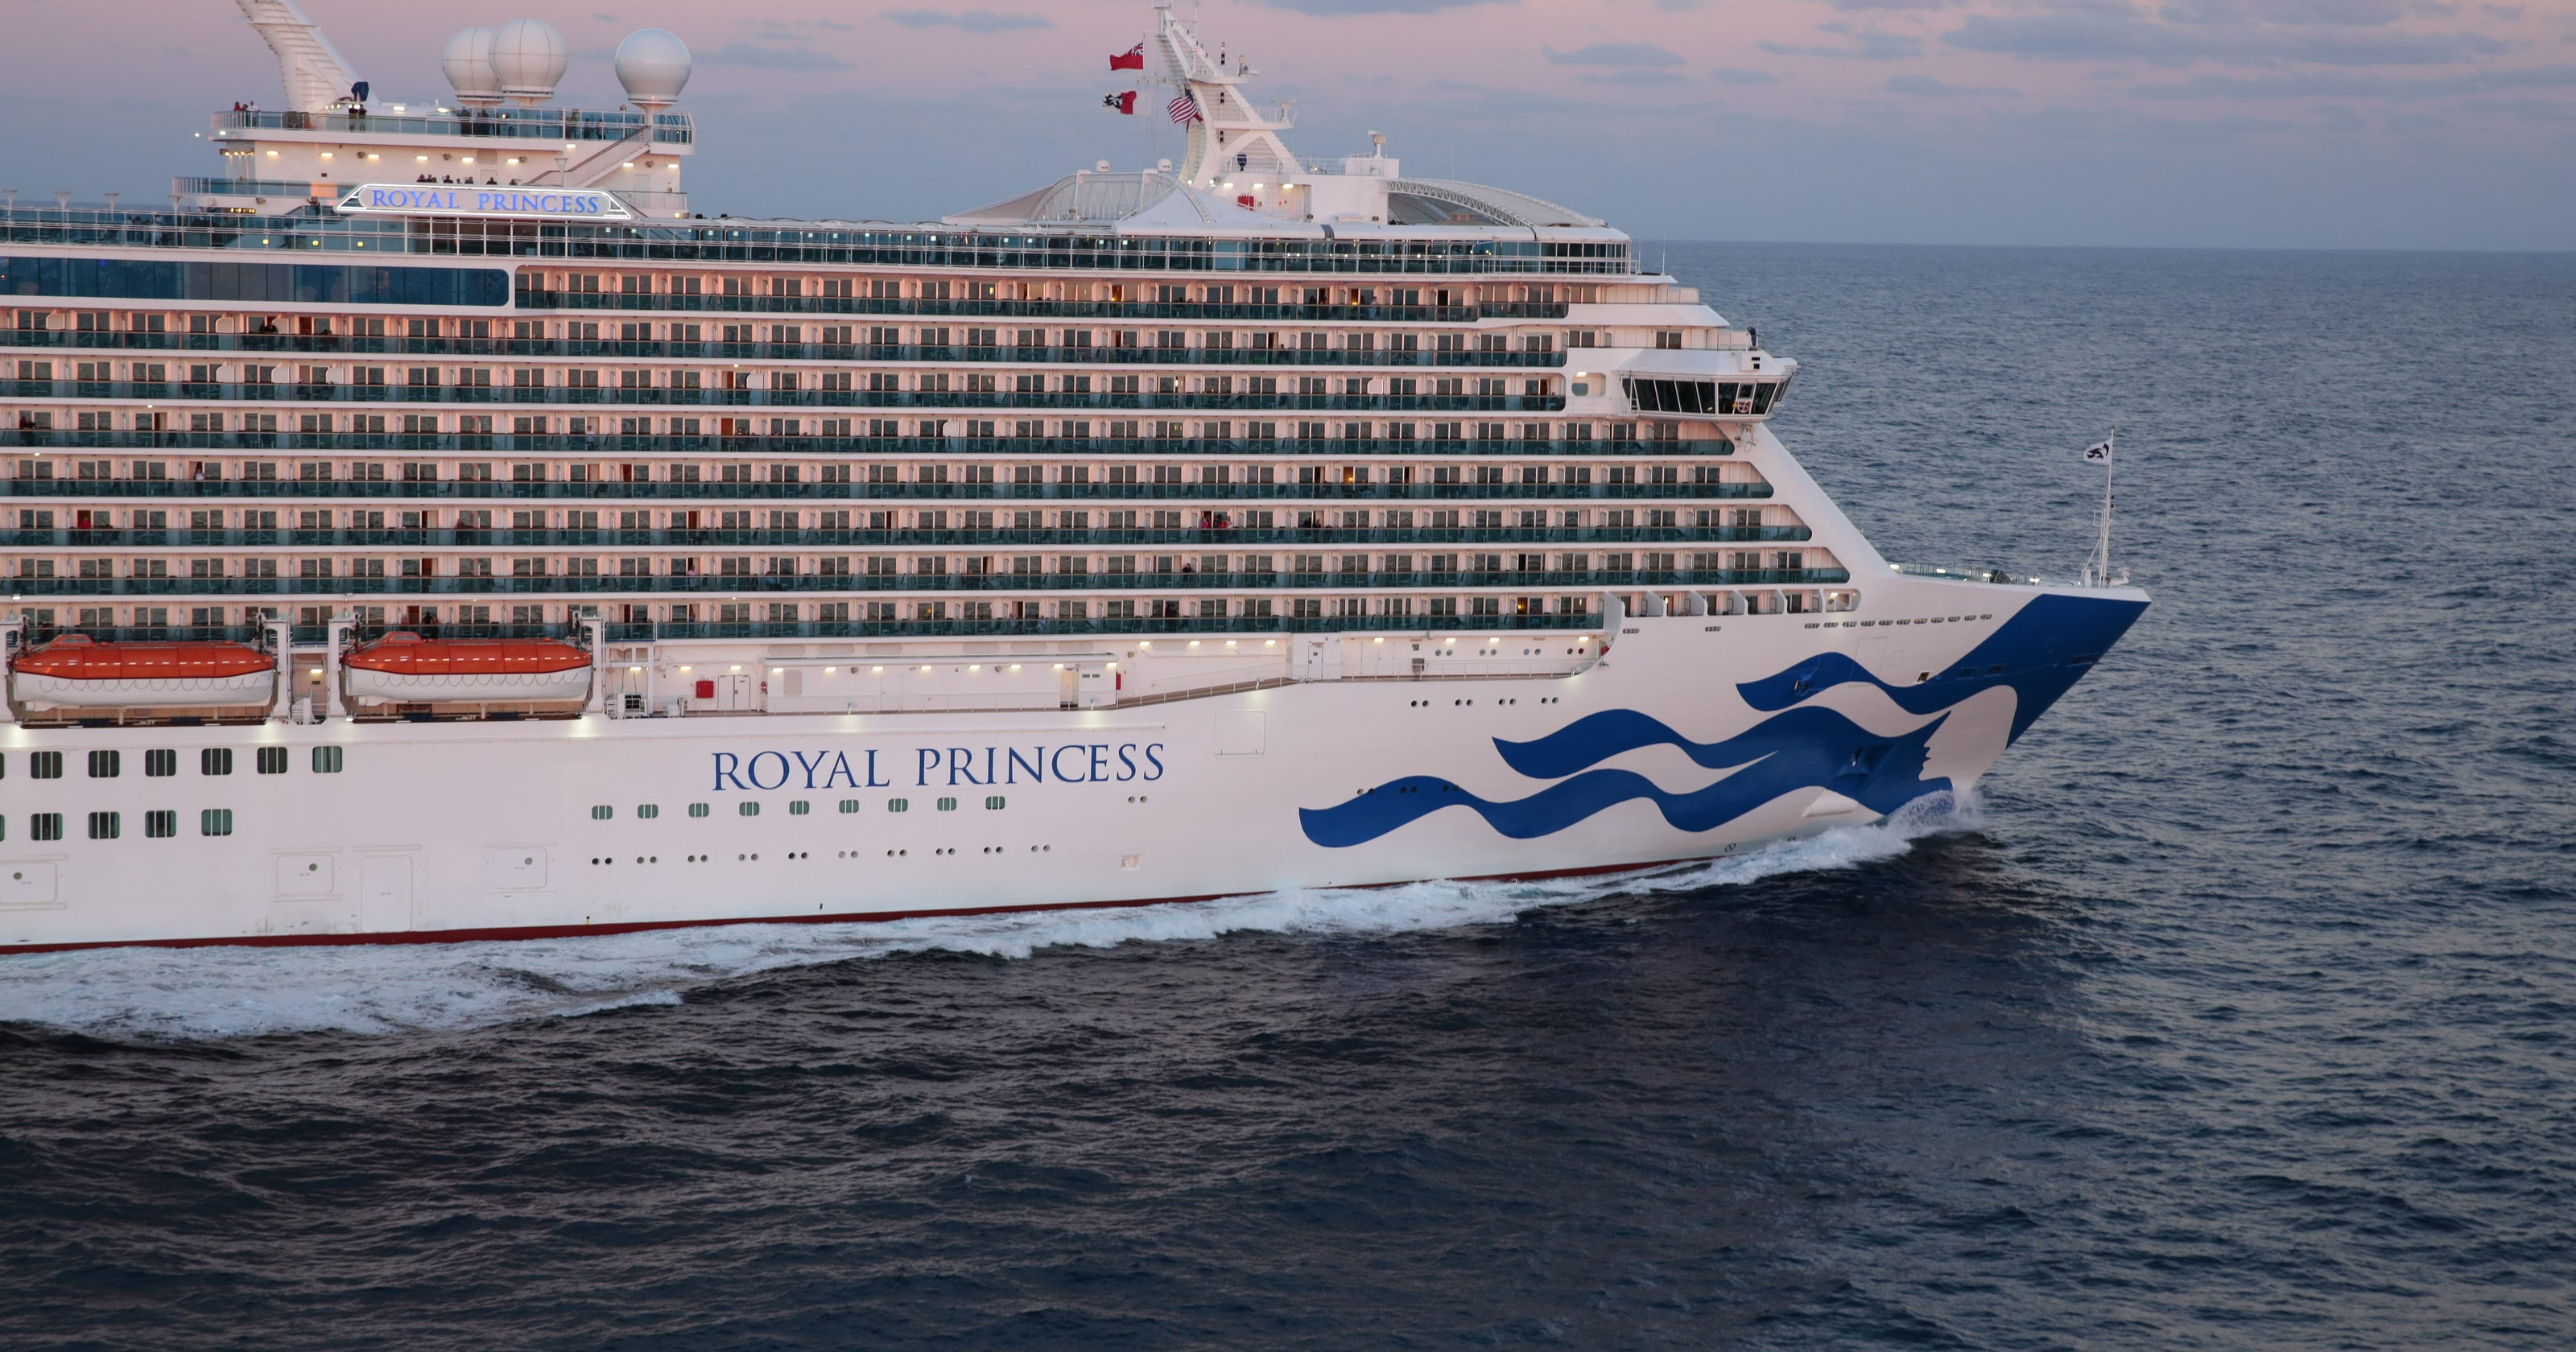 Cruise death: Woman who fell from Princess ship nervous ...